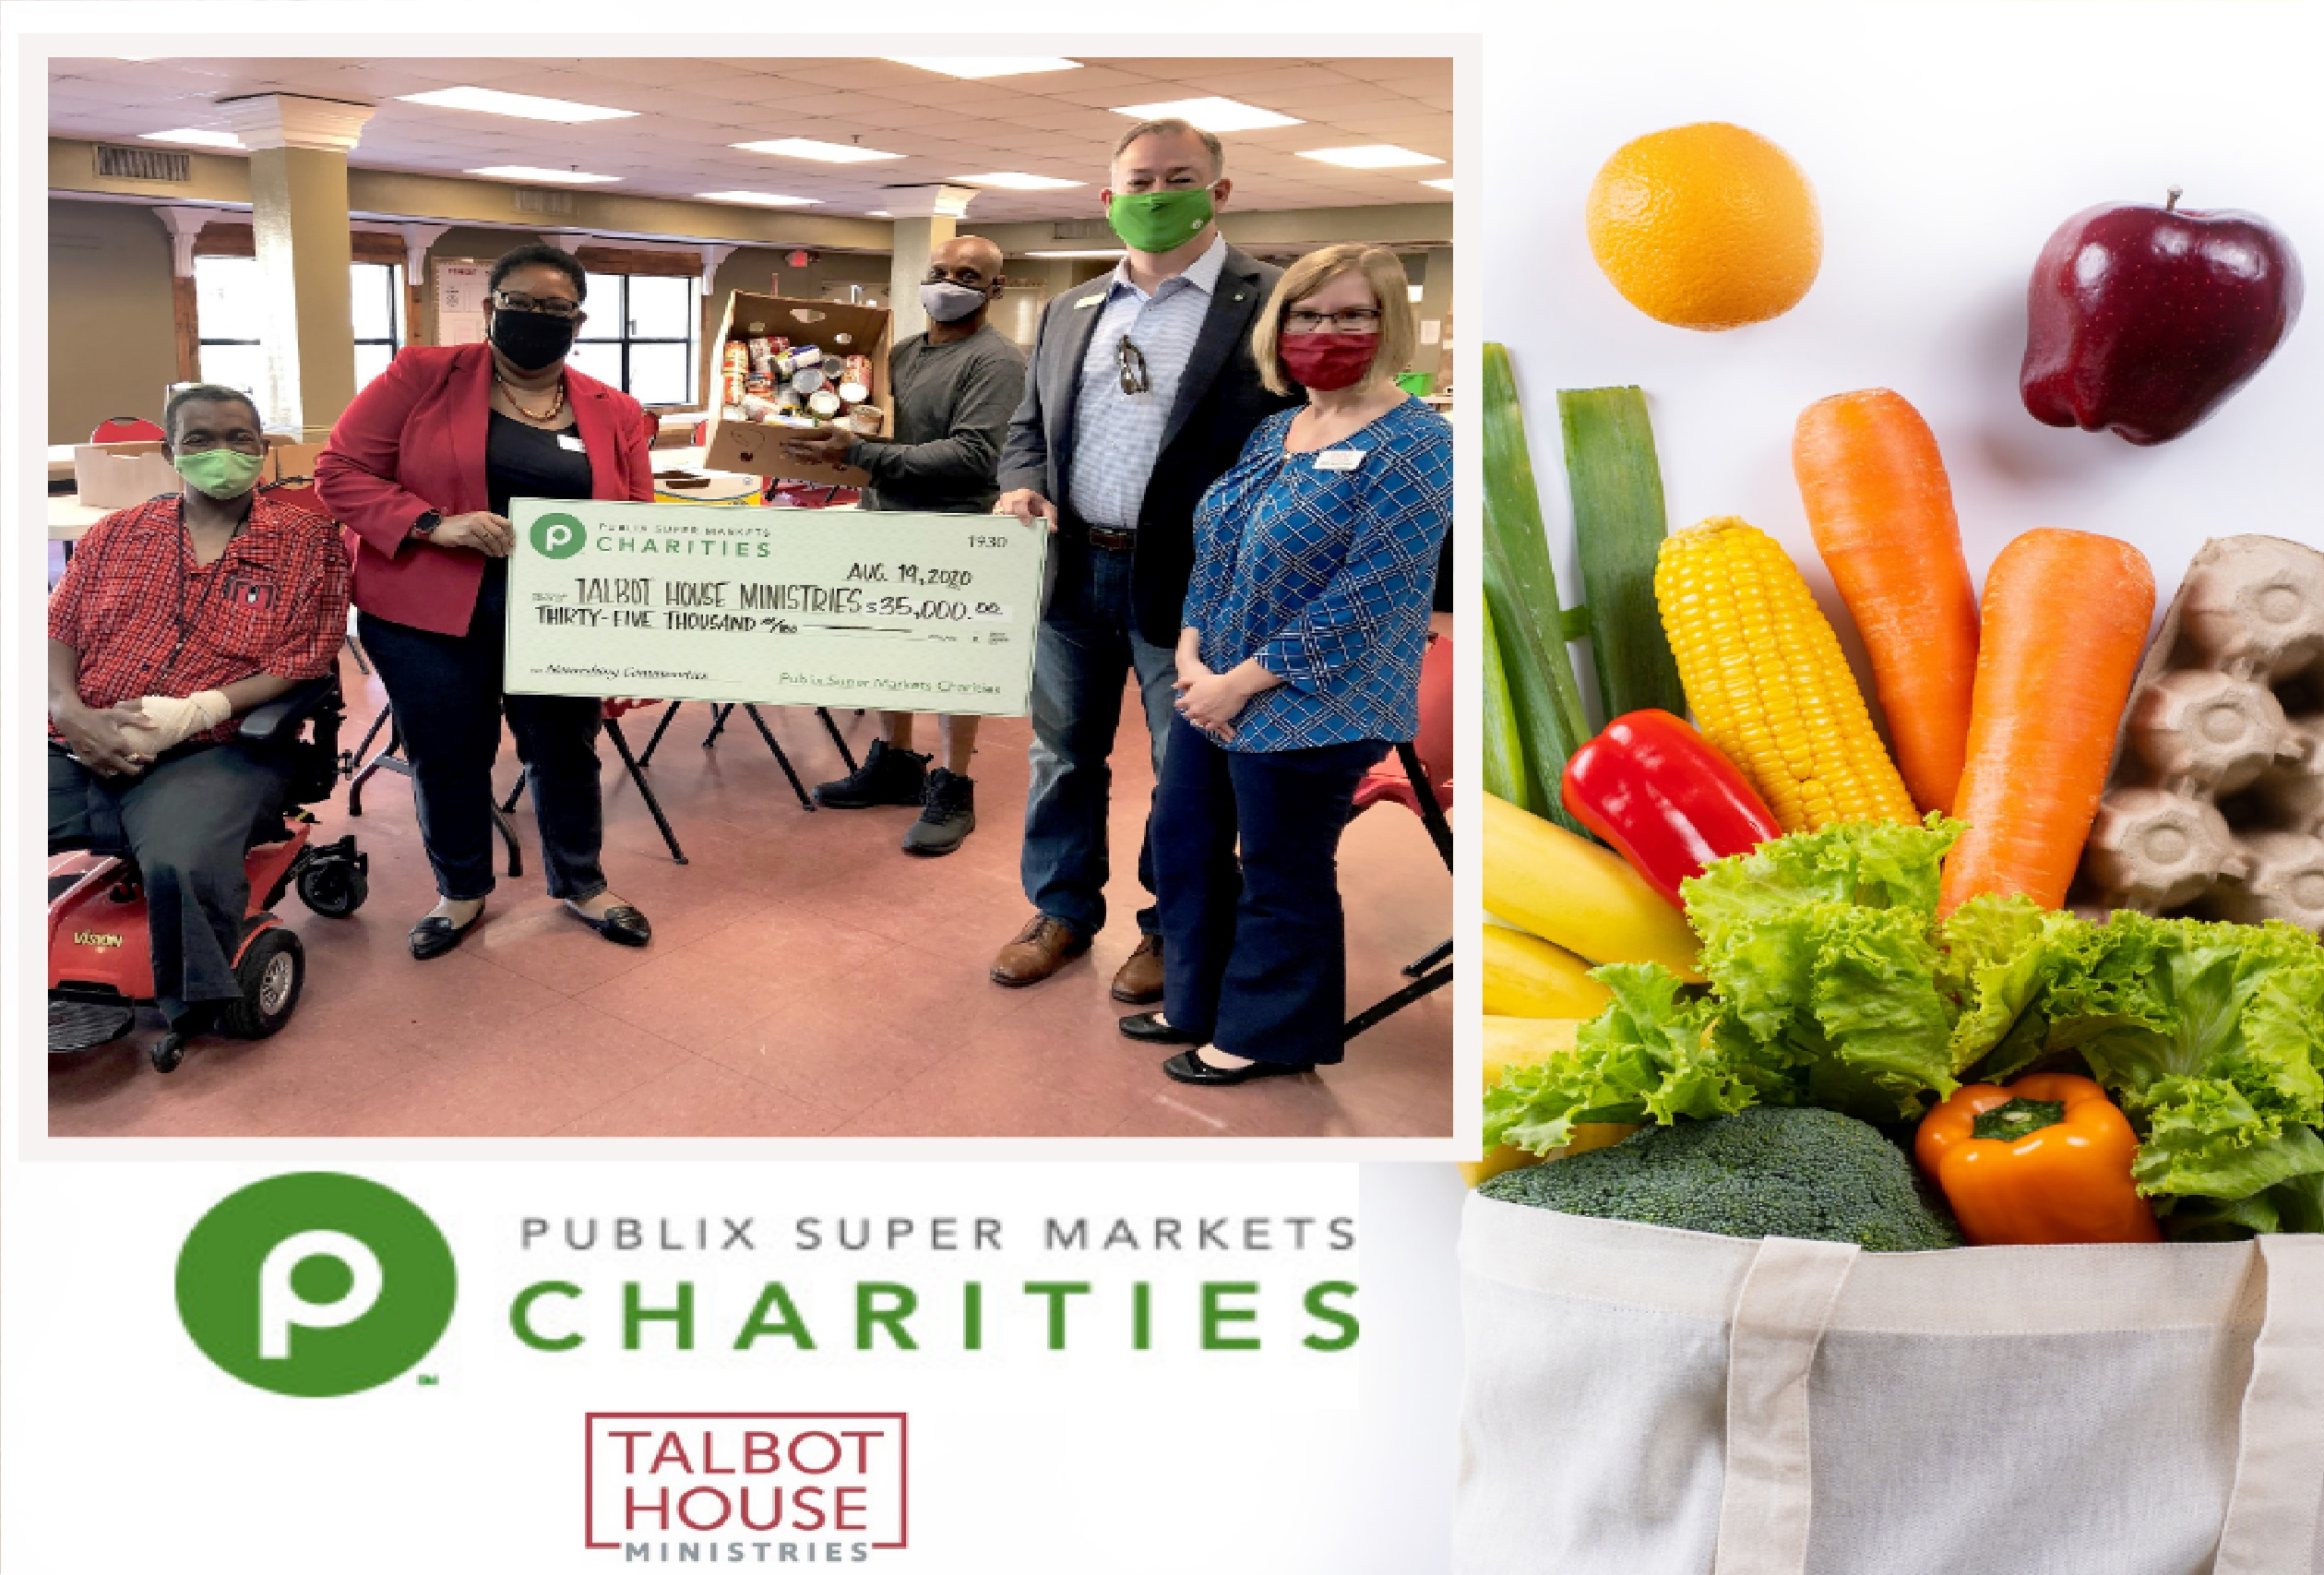 Thank You, Publix Super Markets Charities!